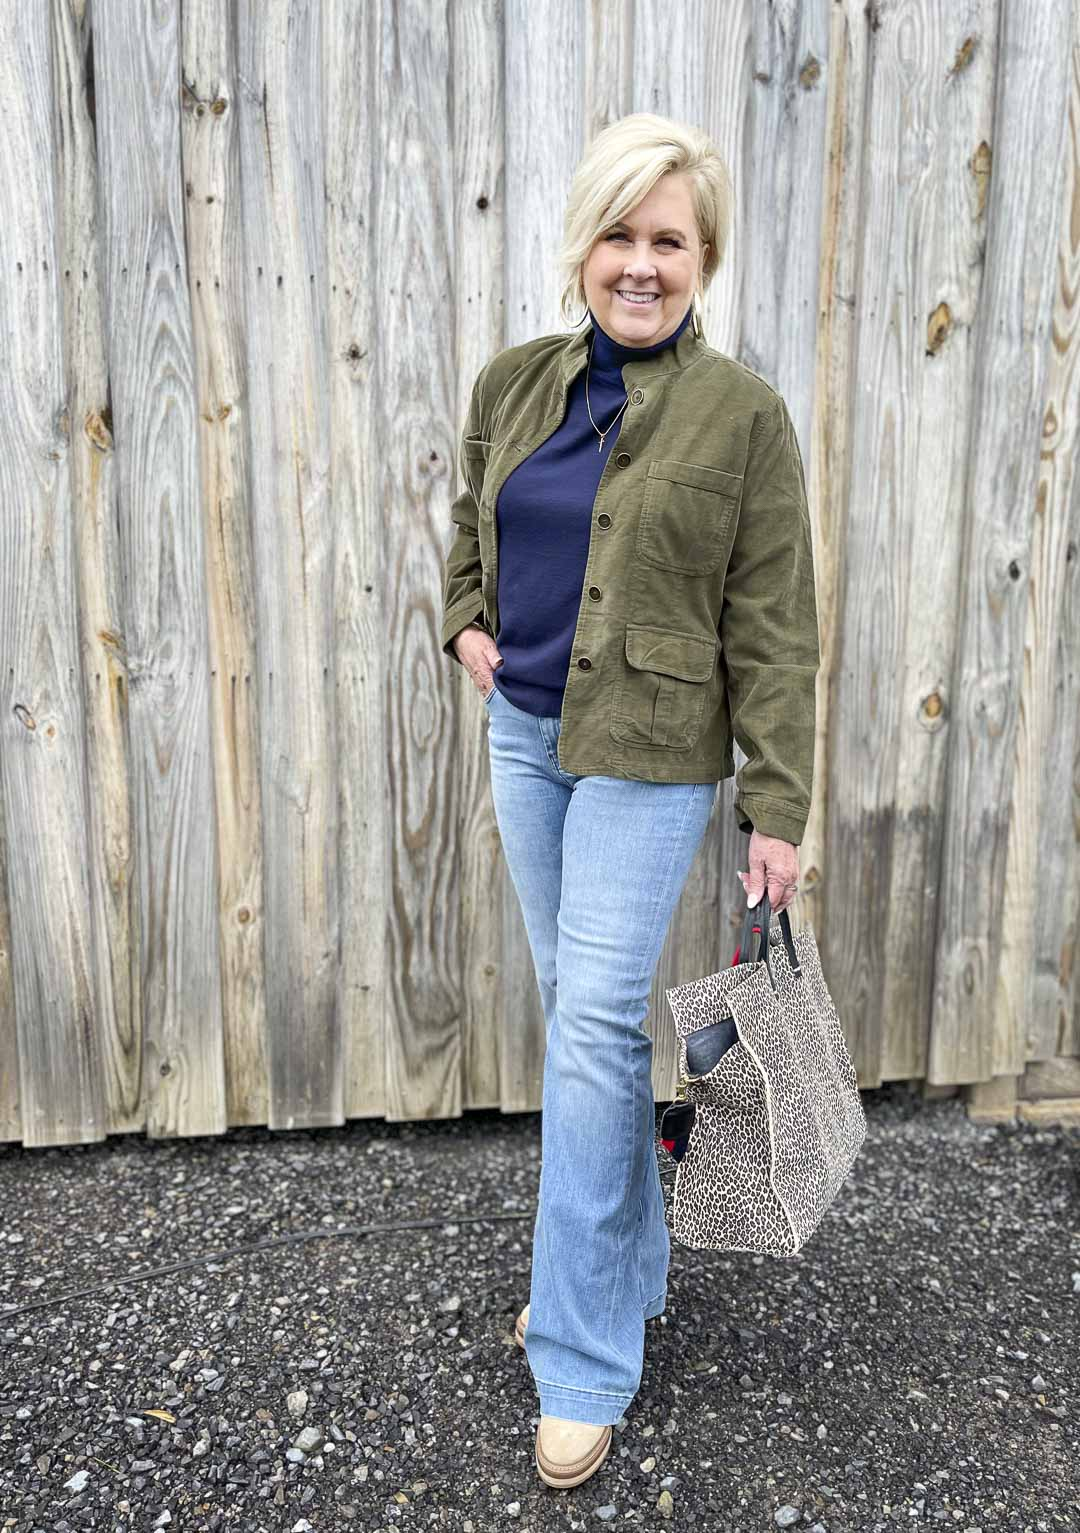 Over 40 Fashion Blogger, Tania Stephens, is wearing a olive thin wale corduroy jacket, a navy turtleneck sweater, and a pair of flare jeans and carrying a large tote bag